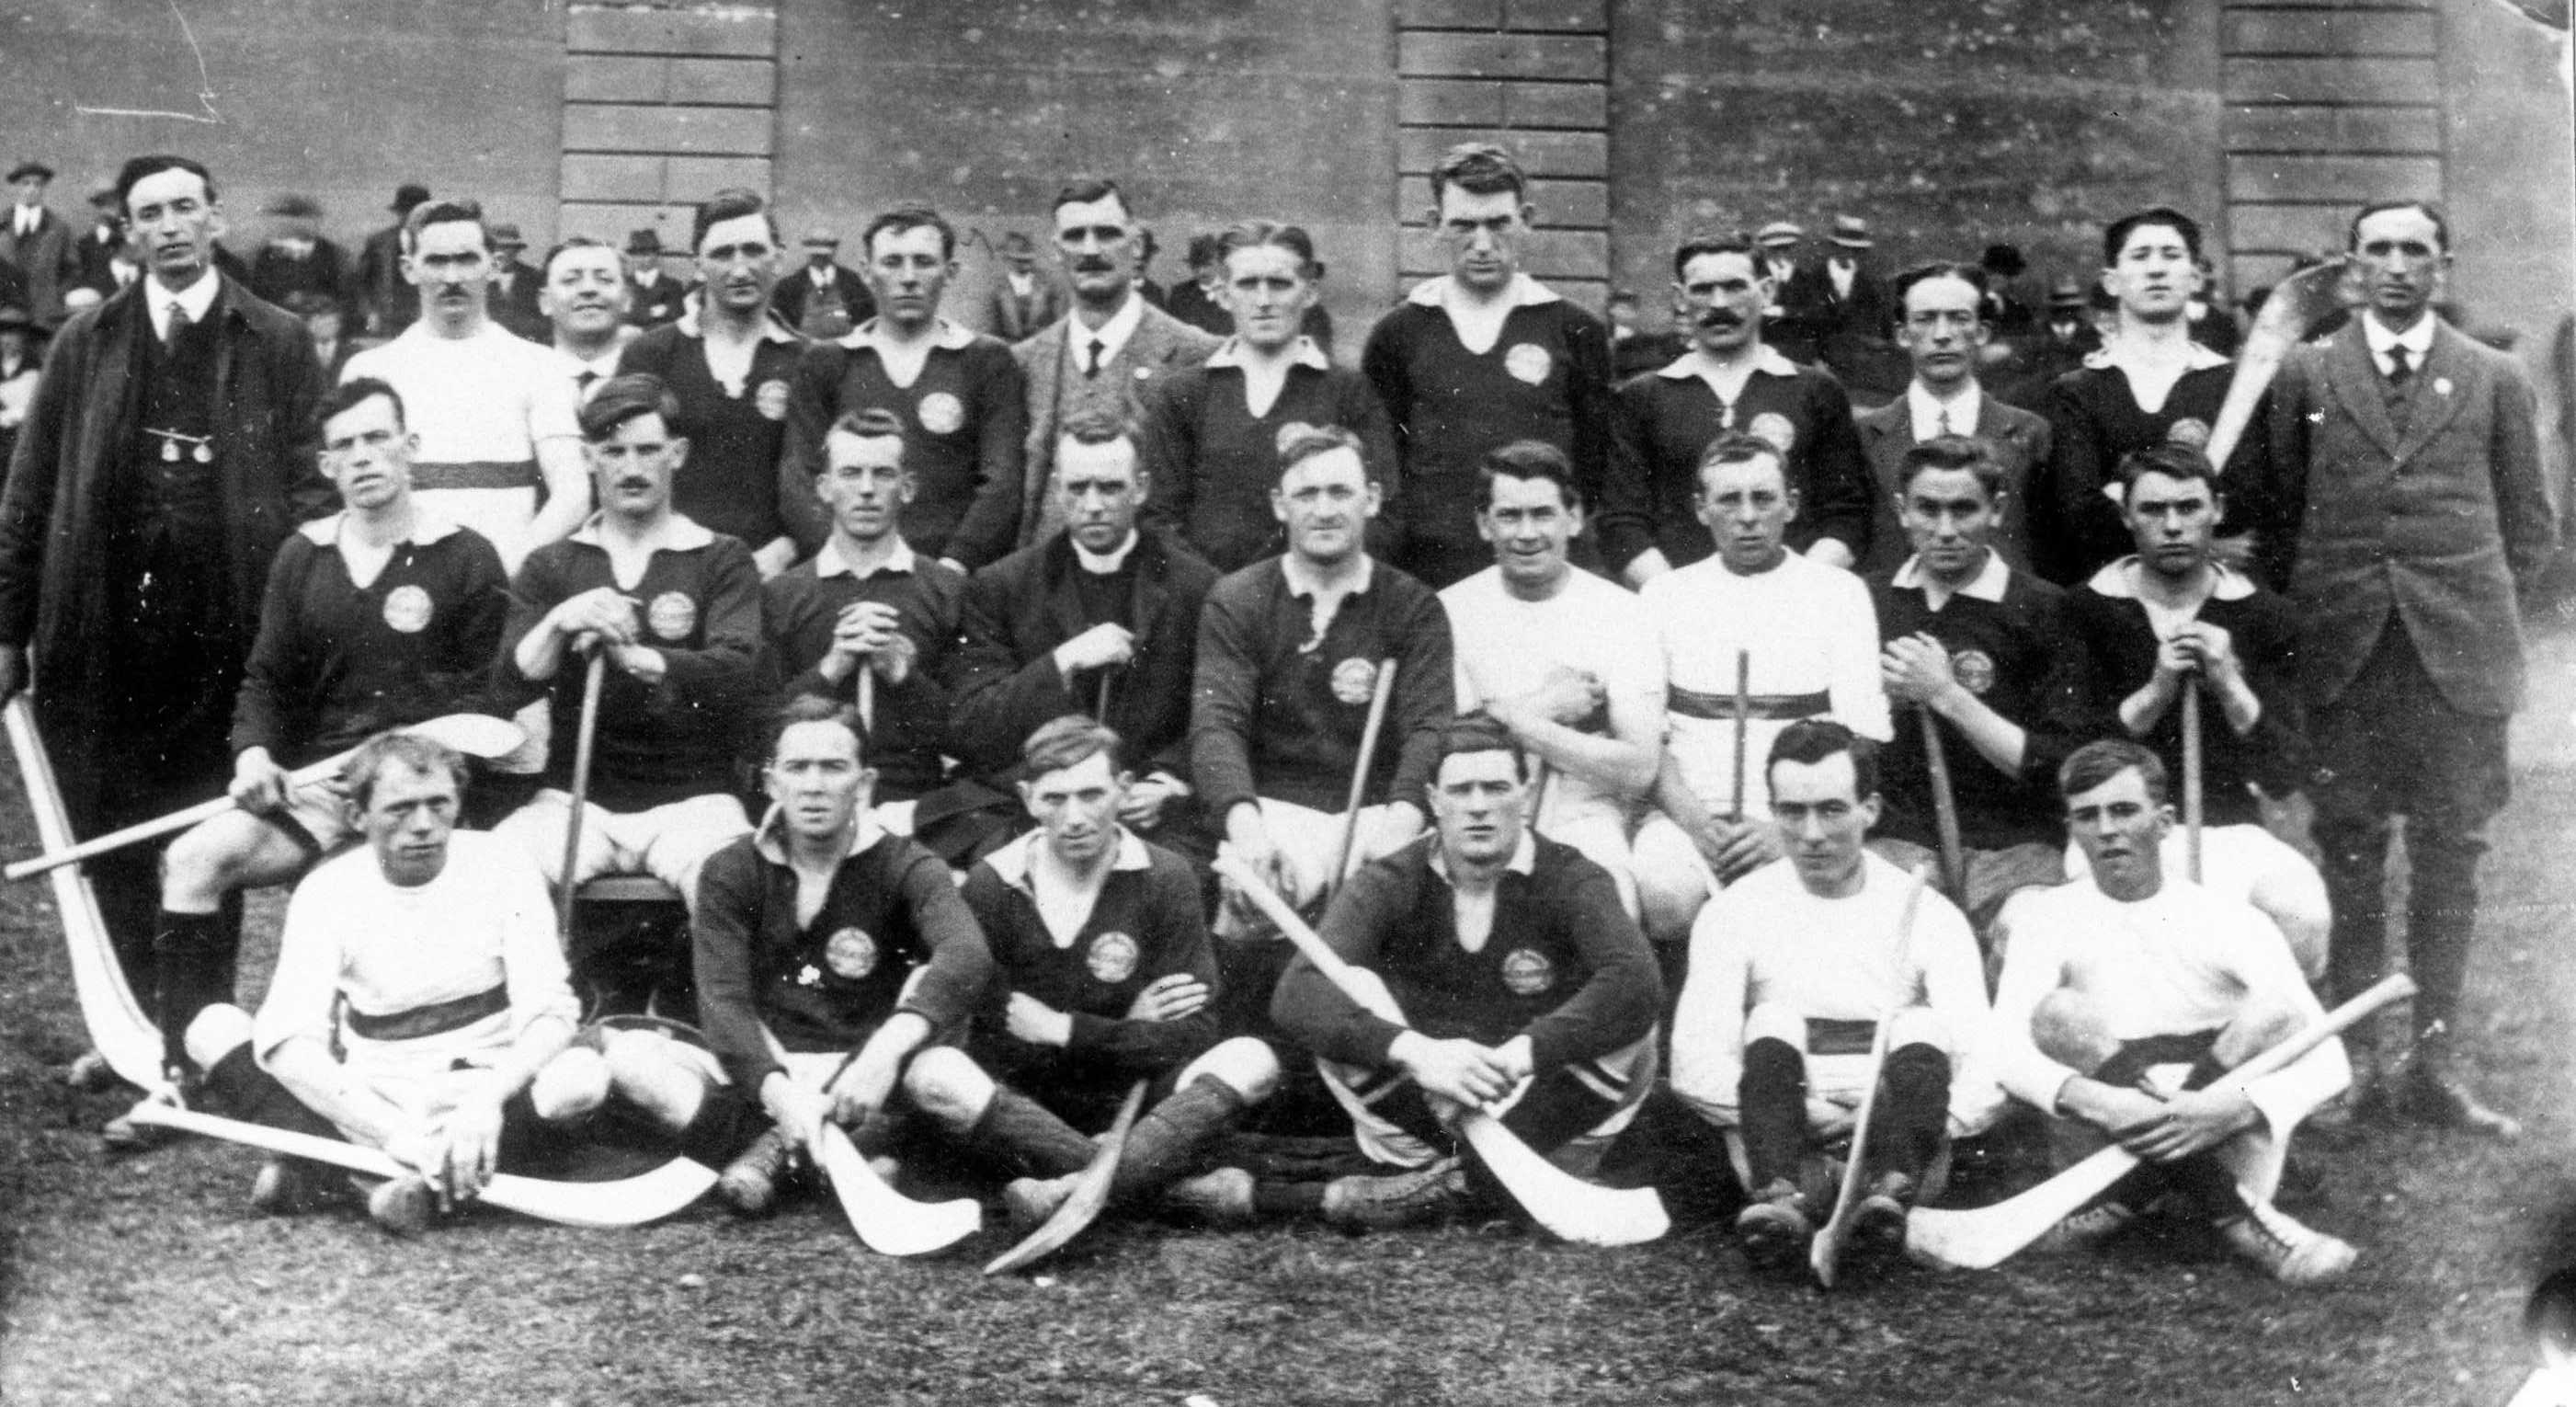 Cork (Selection) 1919 Hurling All-Ireland Champions